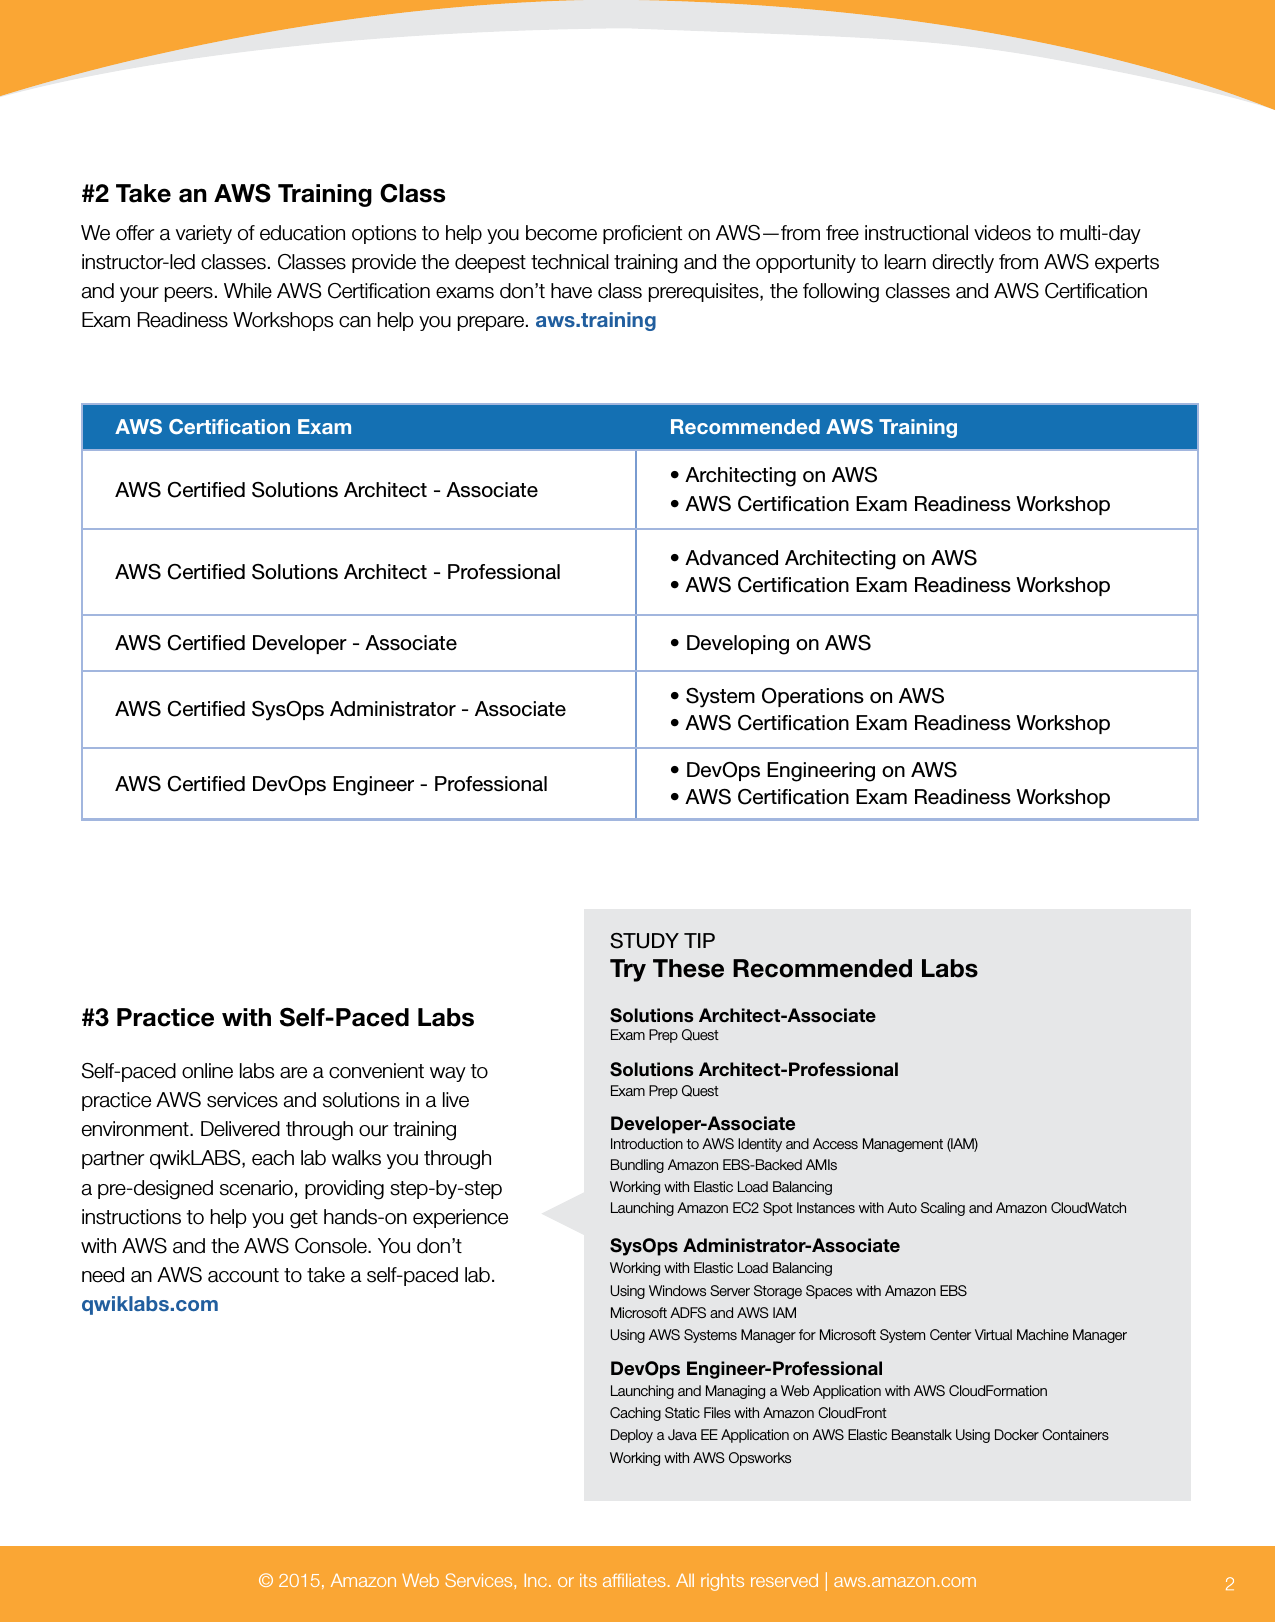 AWS Certification Guide 2015